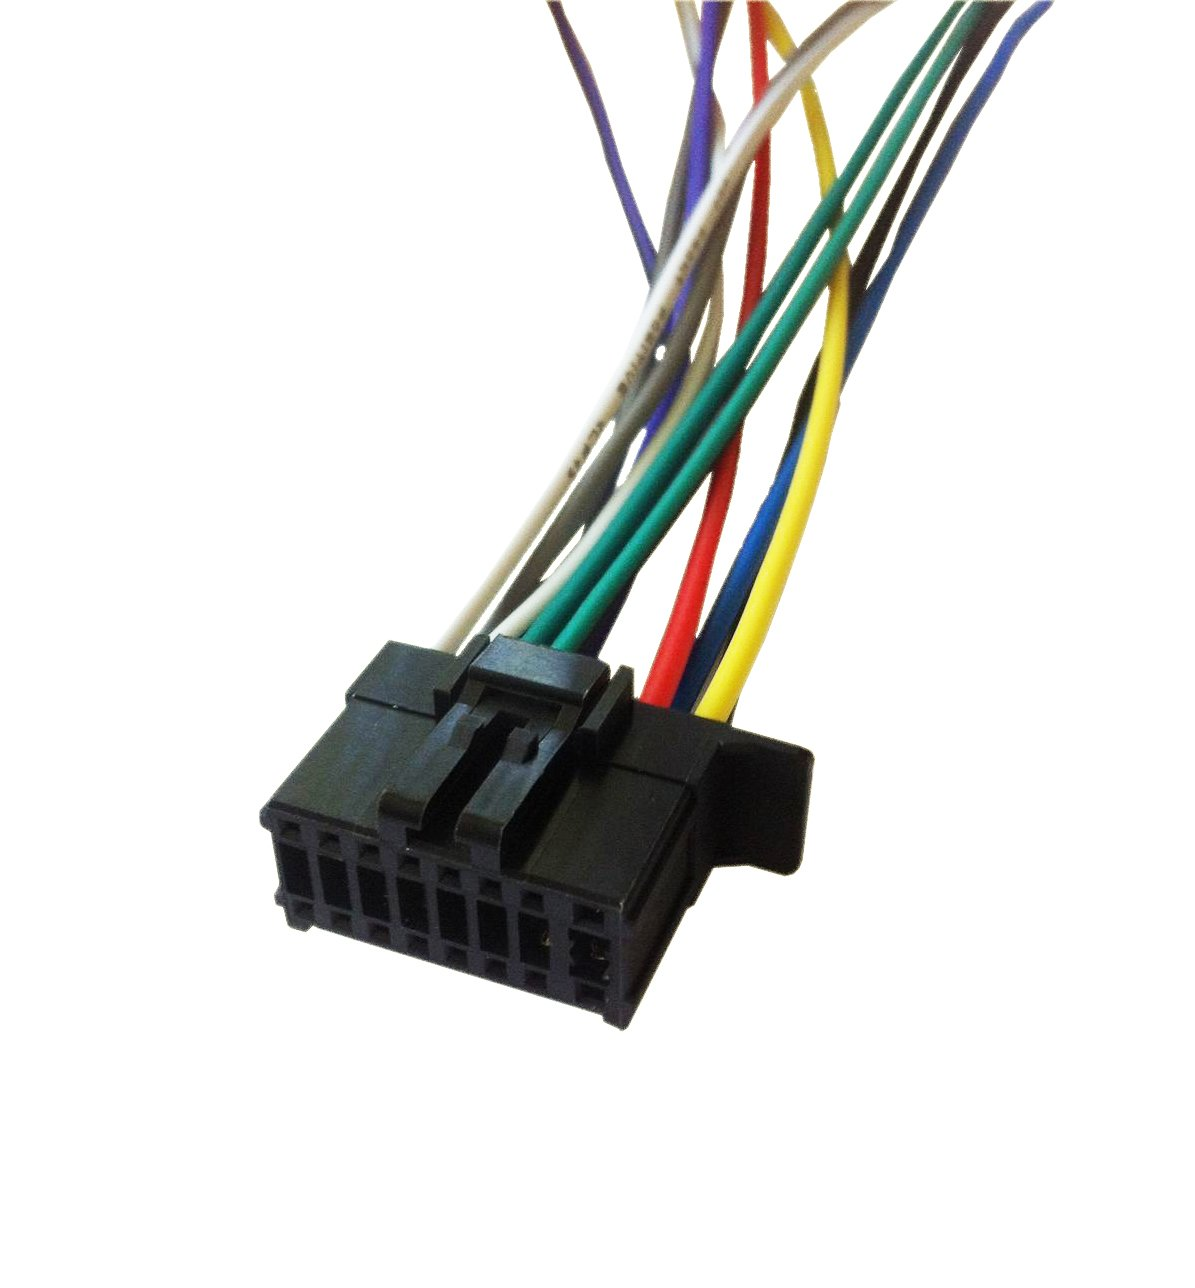 Pioneer Fh X700bt Wiring Harness Diagram - Wiring Diagram 500 on pioneer fh-x700bt wiring harness, pioneer deh-p6200bt wiring harness, pioneer avh-p4400bh wiring harness, pioneer avh-p8400bh wiring harness,